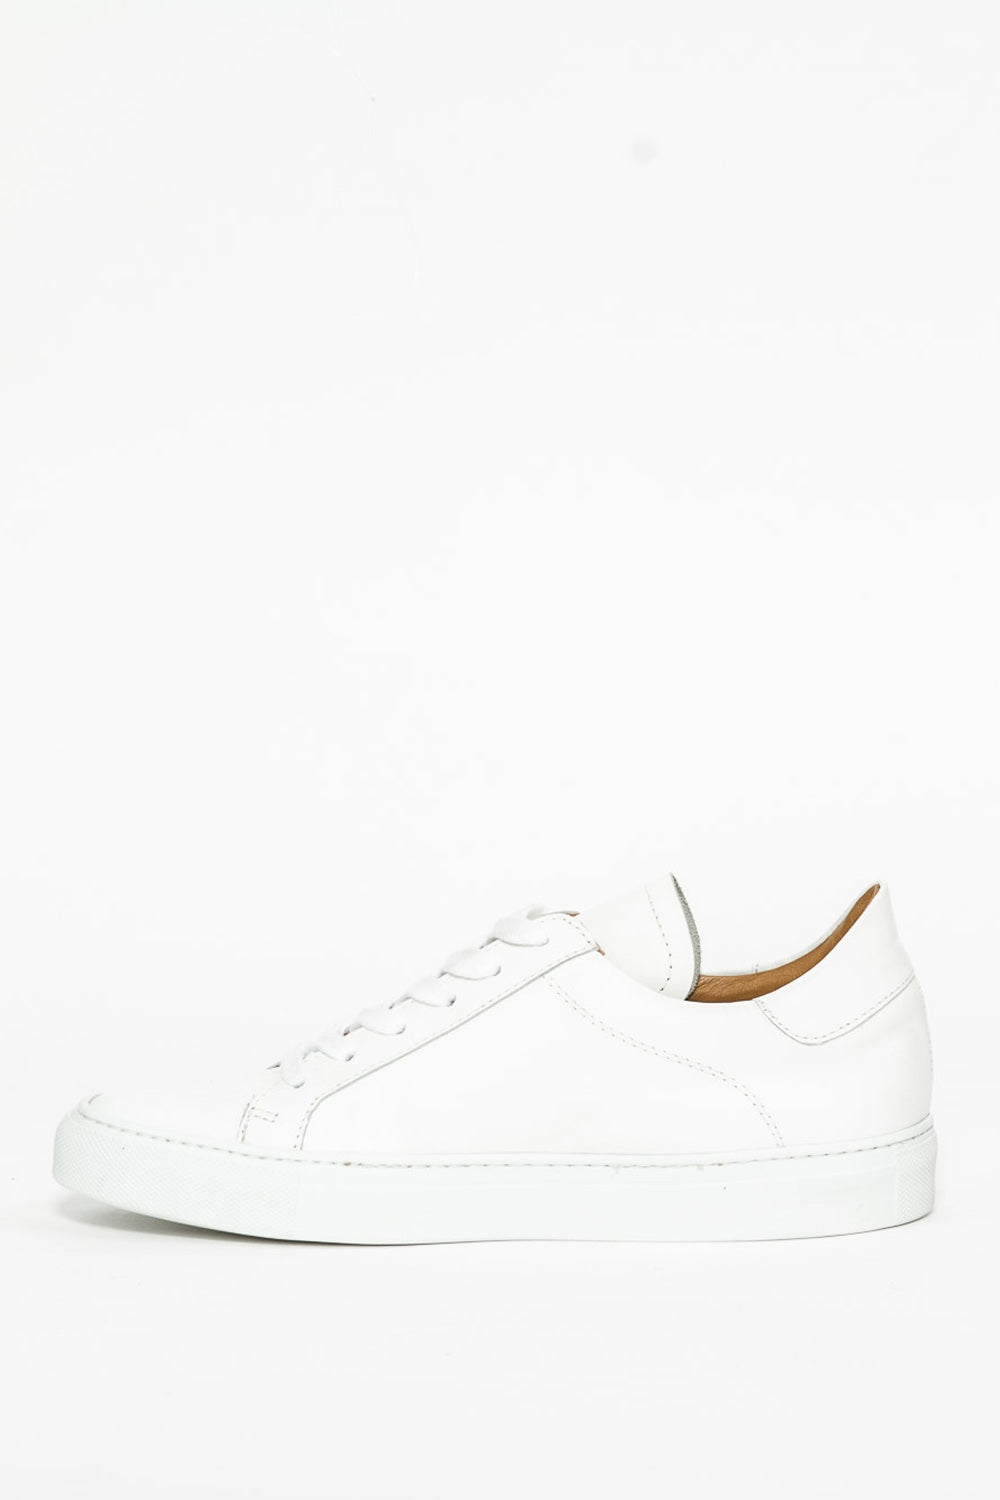 MADISON ET CIEKATE LEATHER LOW TOP SNEAKERS27559